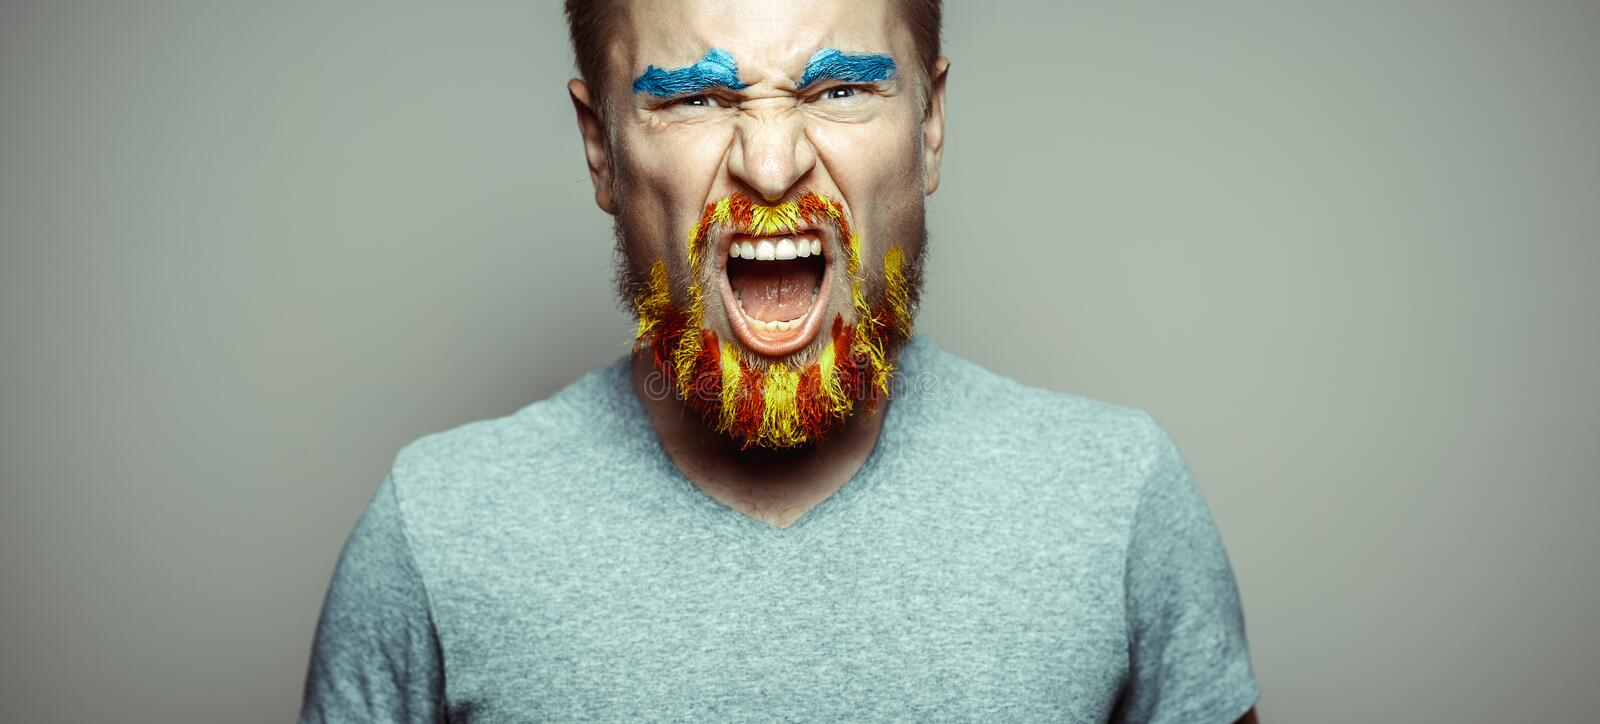 Portrait Of A Cry Man With A beard, Unraveled In Red And Yellow Colors . Referendum For The Separation Of Catalonia From Spain. De royalty free stock image